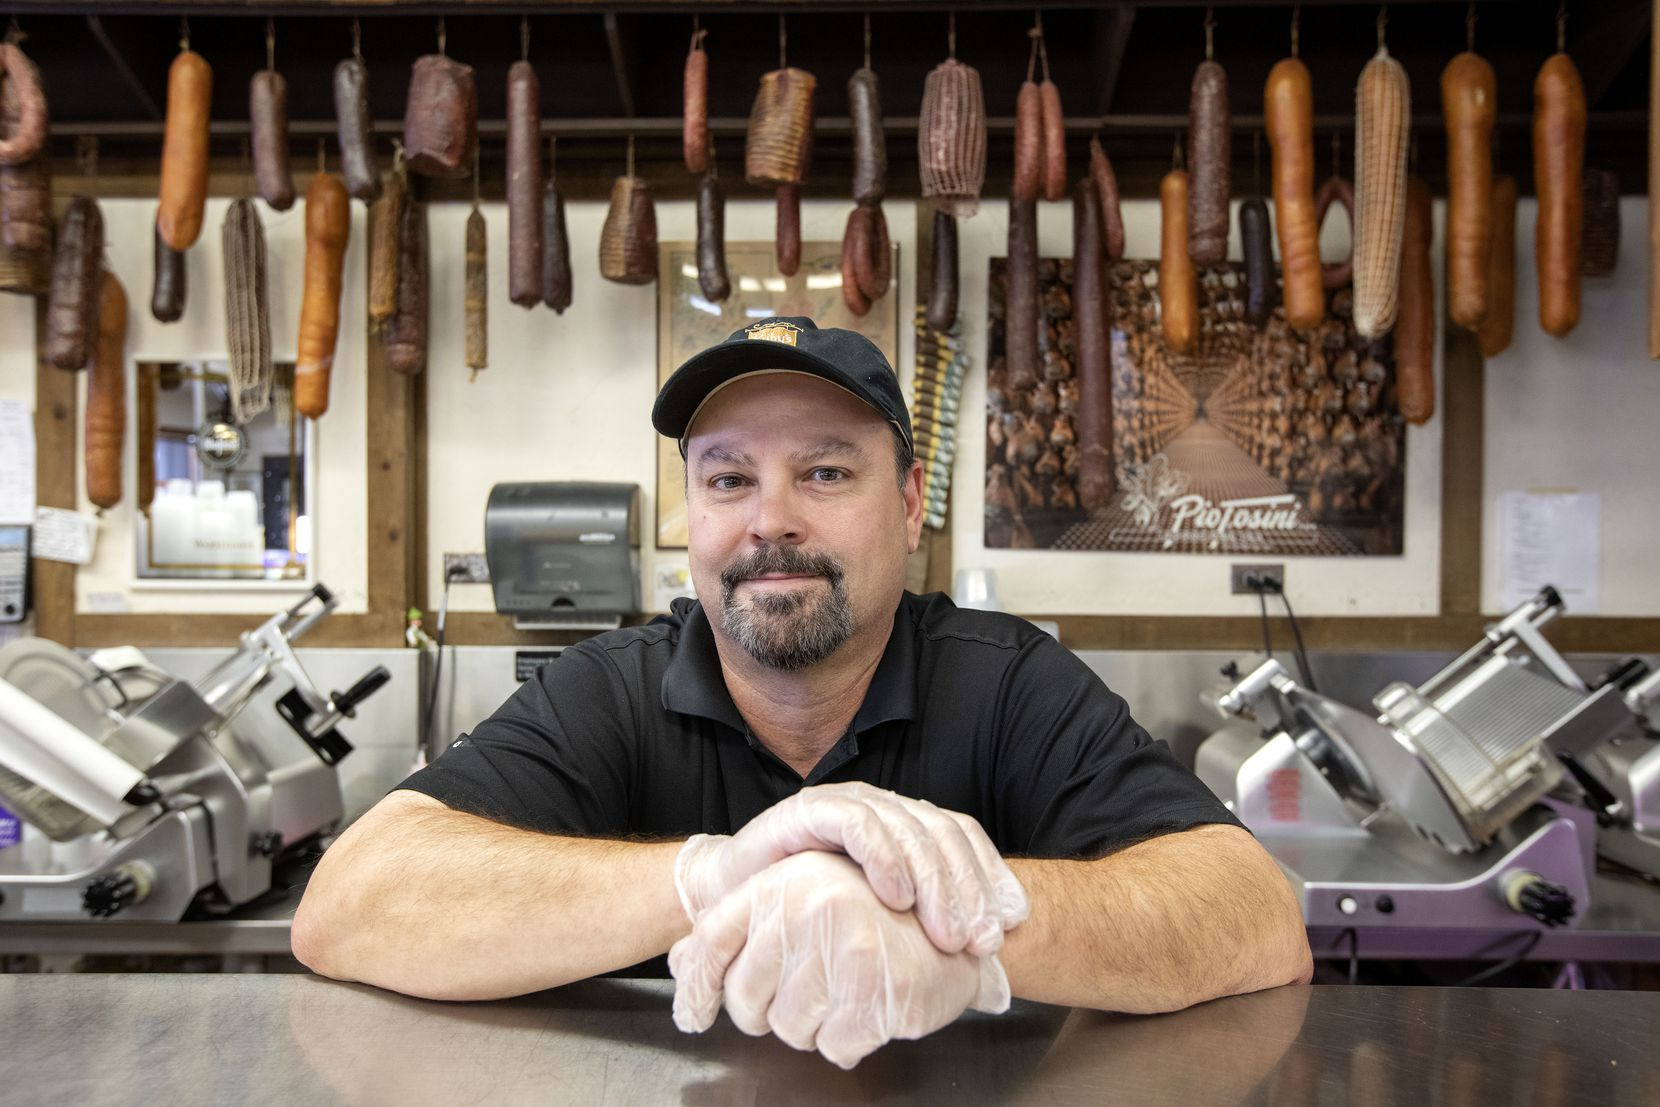 Karl Kuby Jr., owner of Kuby's Sausage House and European Market, poses for a portrait behind the counter.